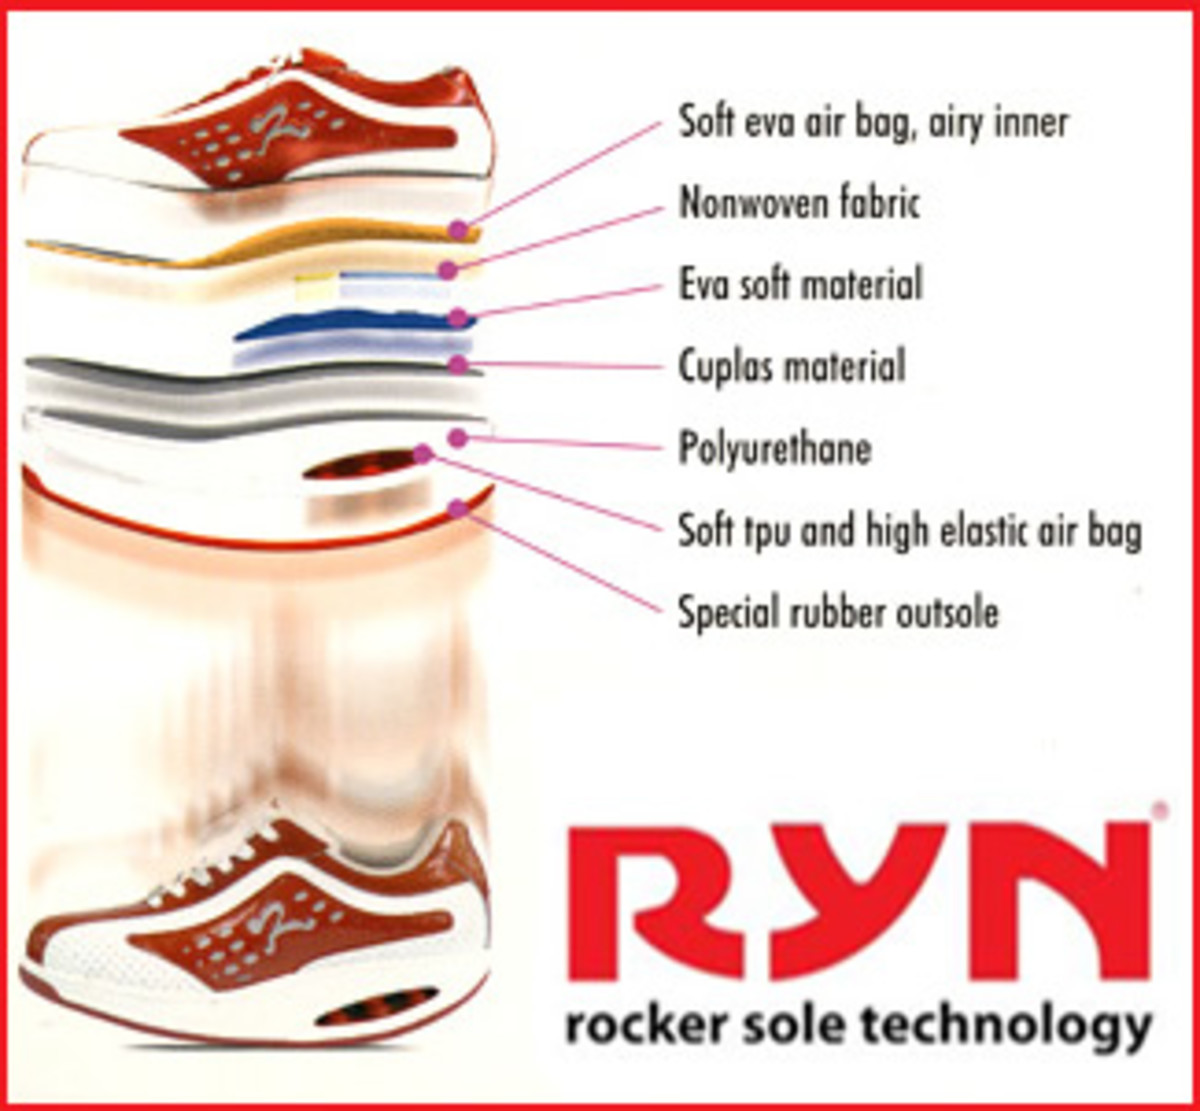 There's more to Ryn Shoes than EVA alone